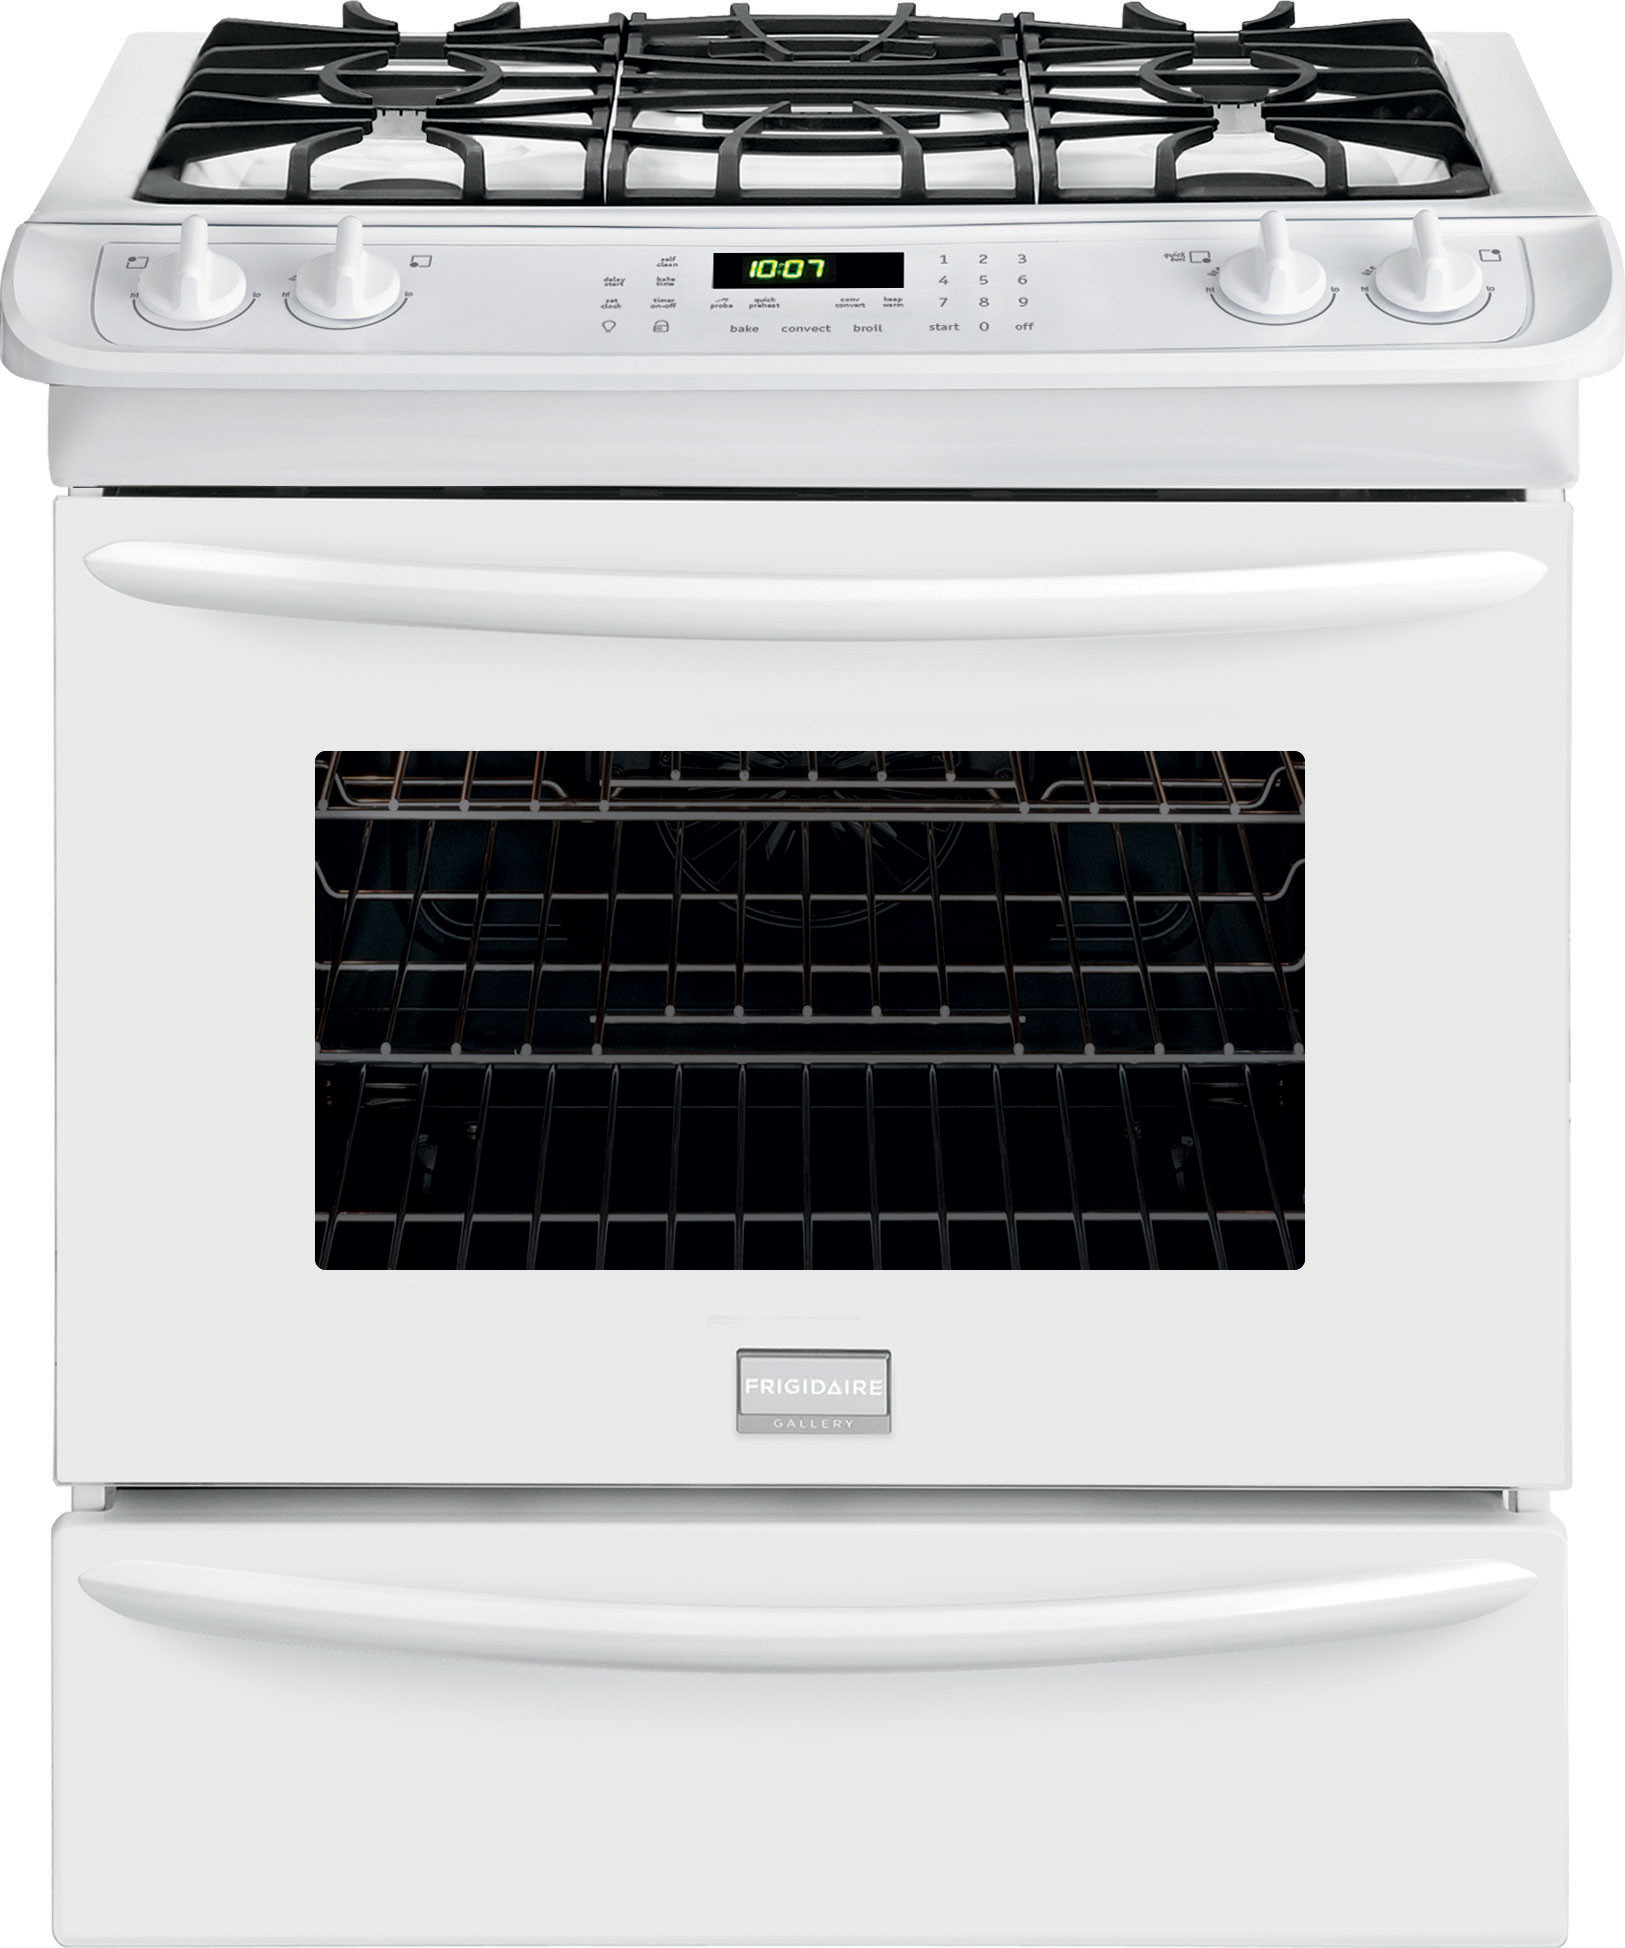 Frigidaire Fggs3065pw 30 Inch Slide In Gas Range With 4 5